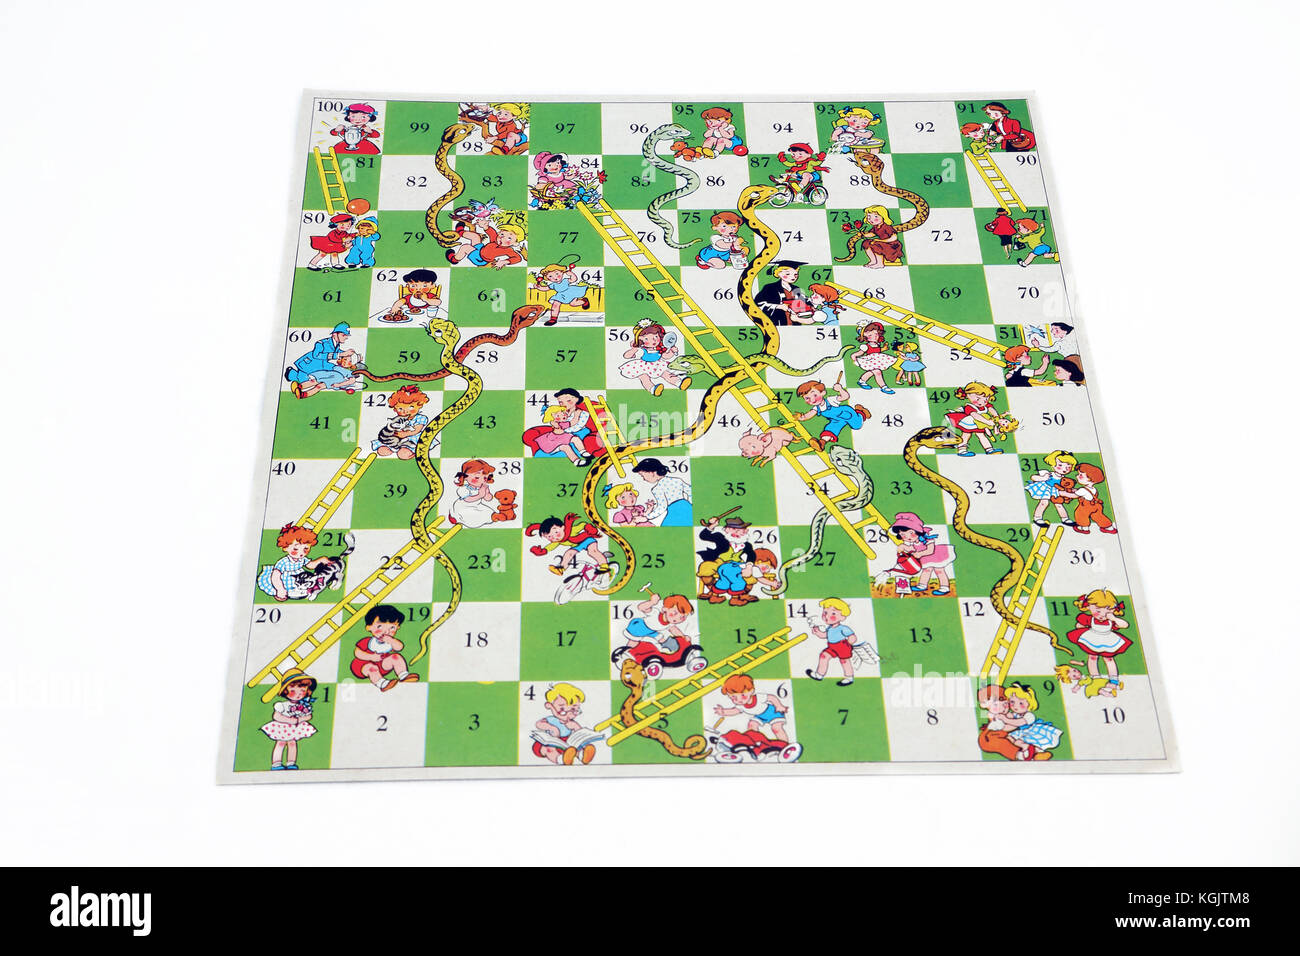 Vintage 1980's Snakes and Ladders Board Game - Stock Image